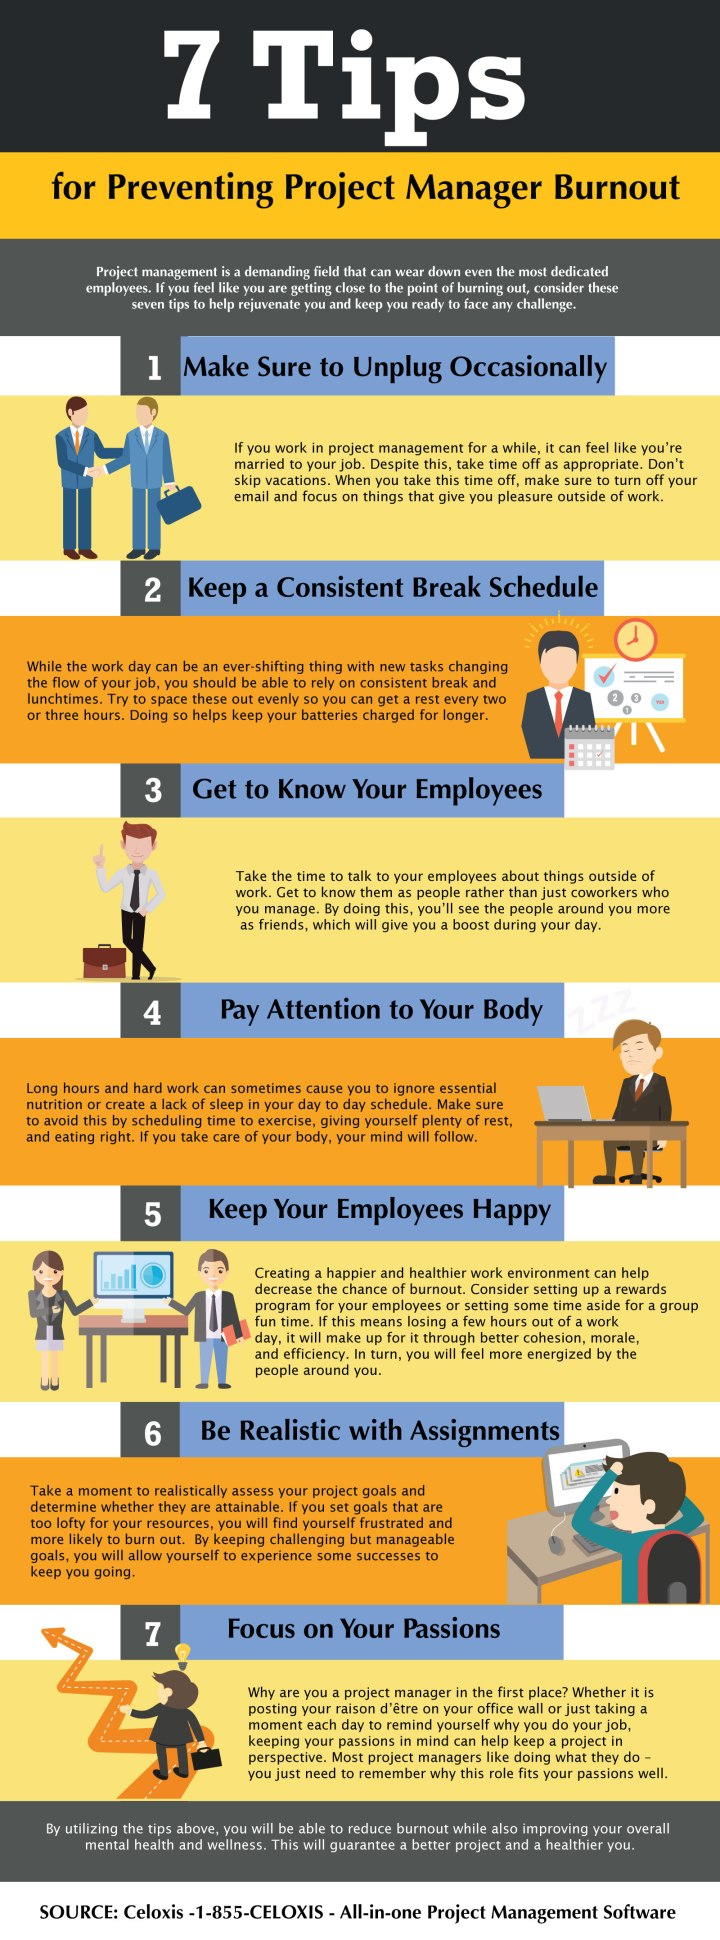 INFOGRAPHIC: 7 Tips for Preventing Project Manager Burnout